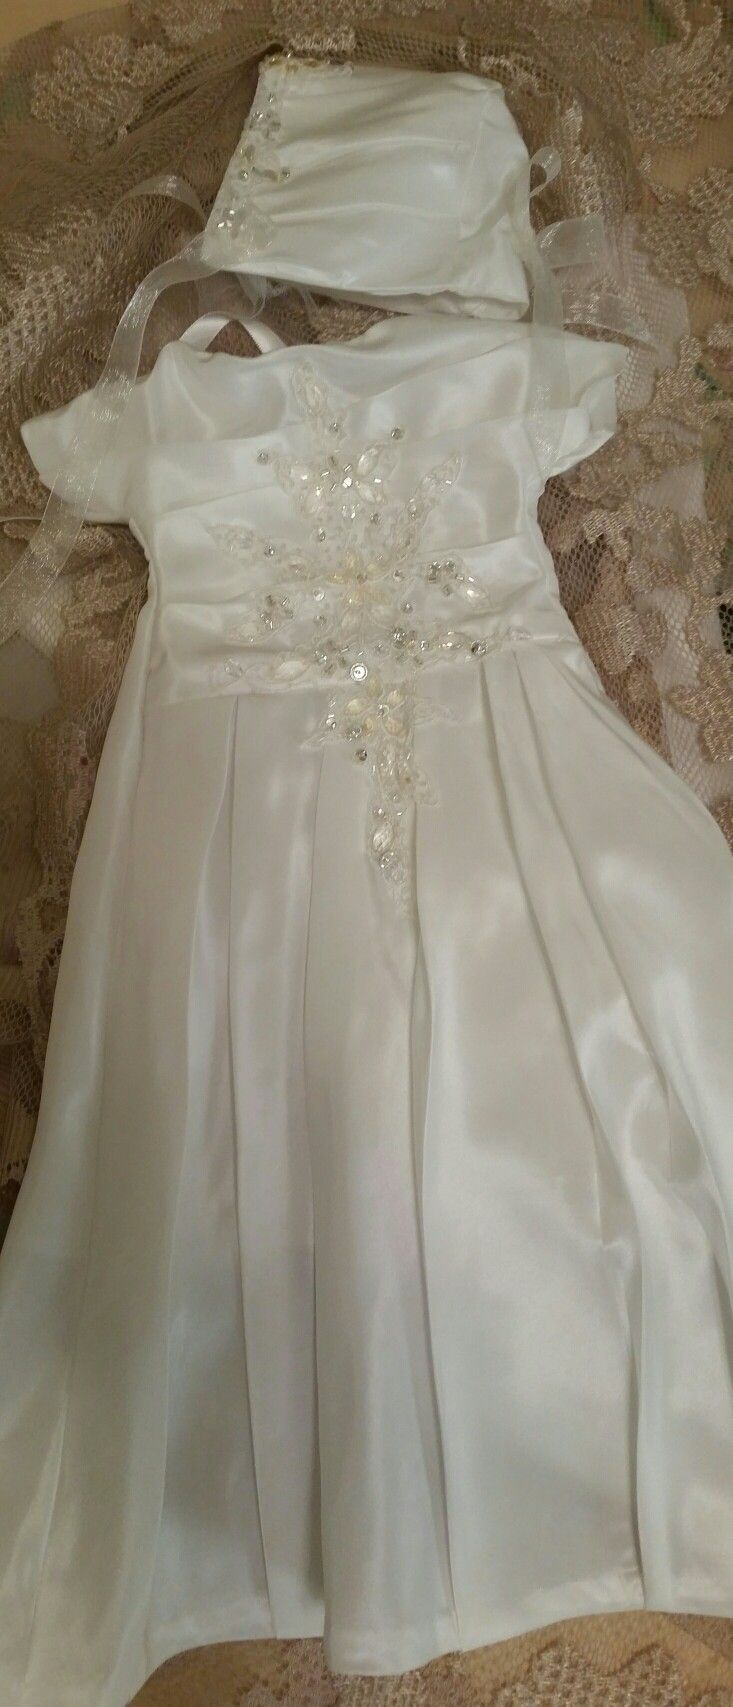 Angel gown by Memories of Morgan | ANGEL GOWNS | Pinterest | Angel ...